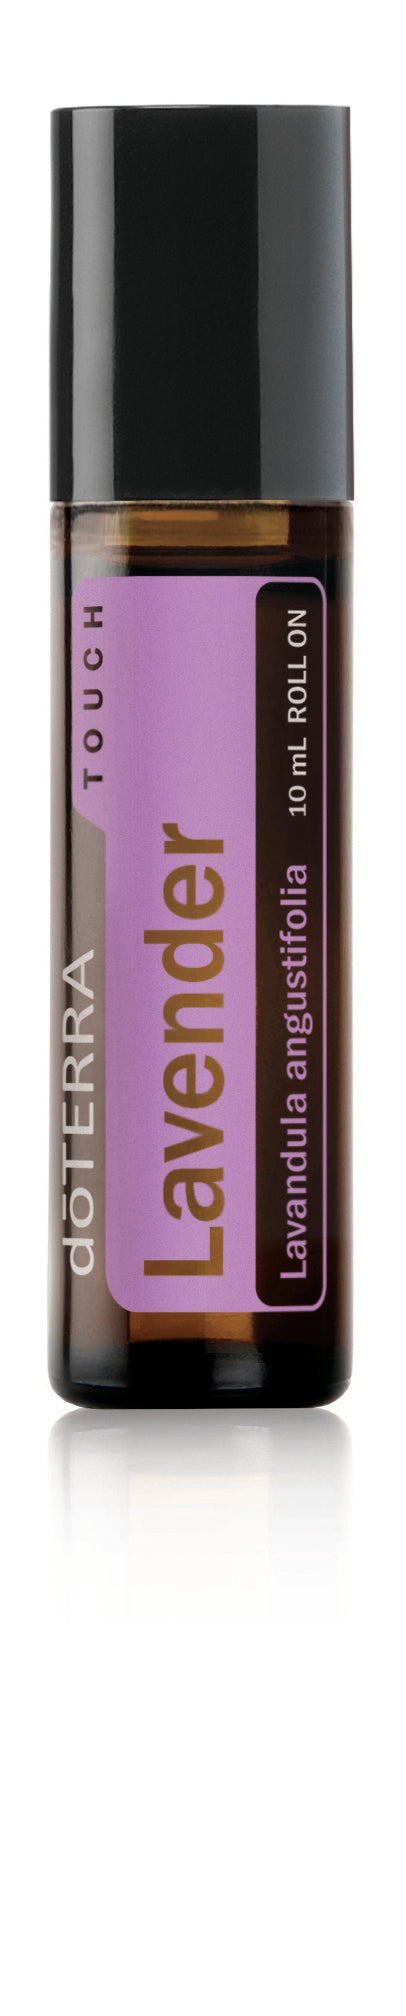 doTERRA Lavender Touch - Purity of Earth